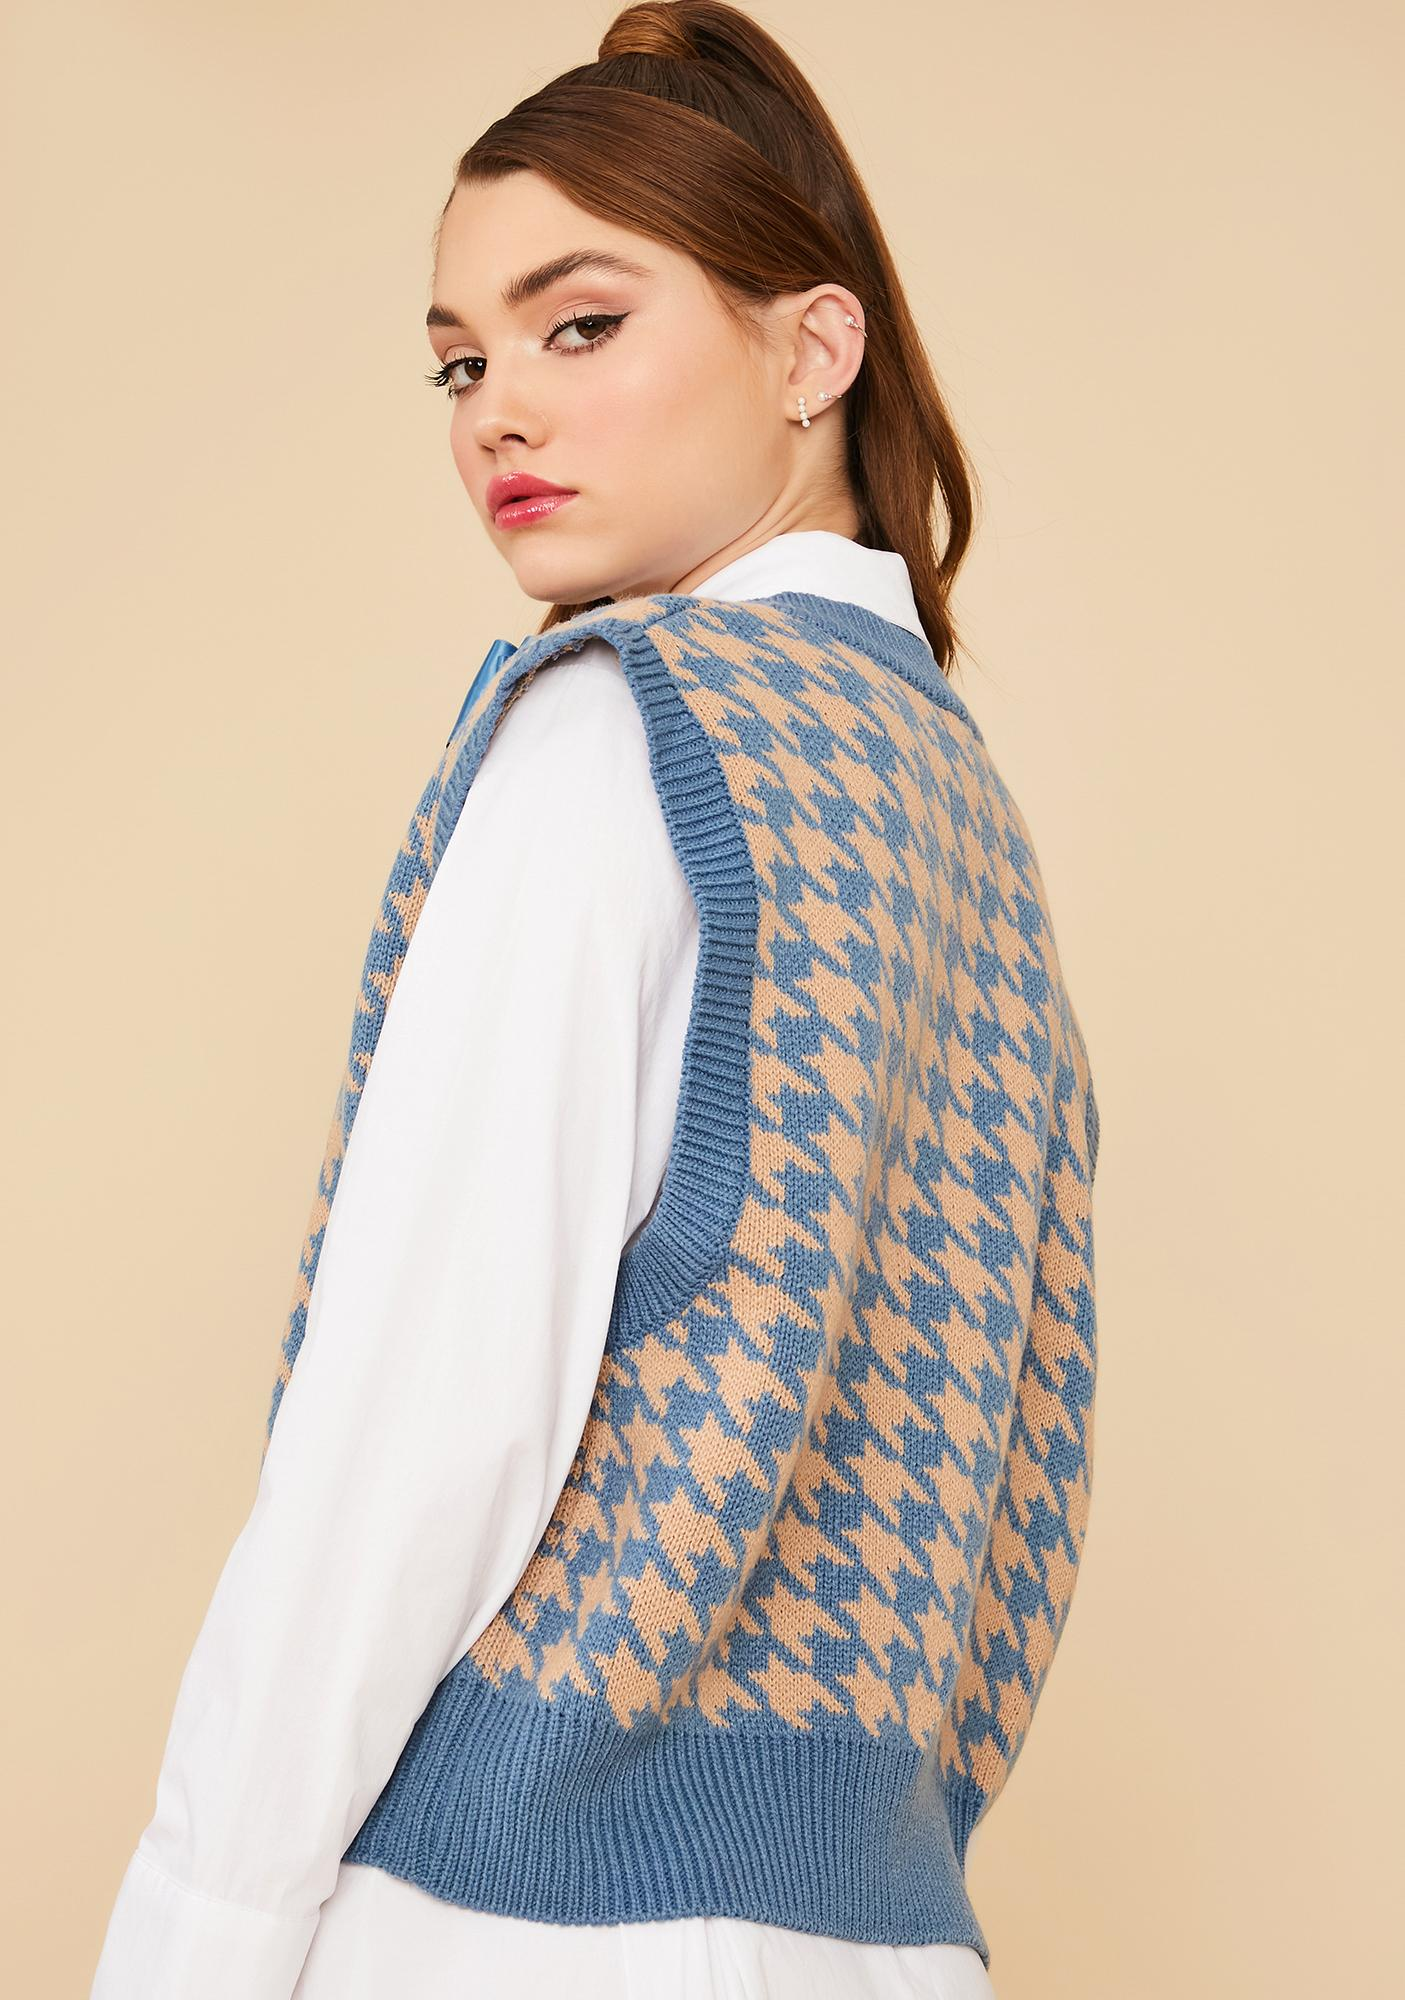 Pool Somebody Told Me Houndstooth Sweater Vest